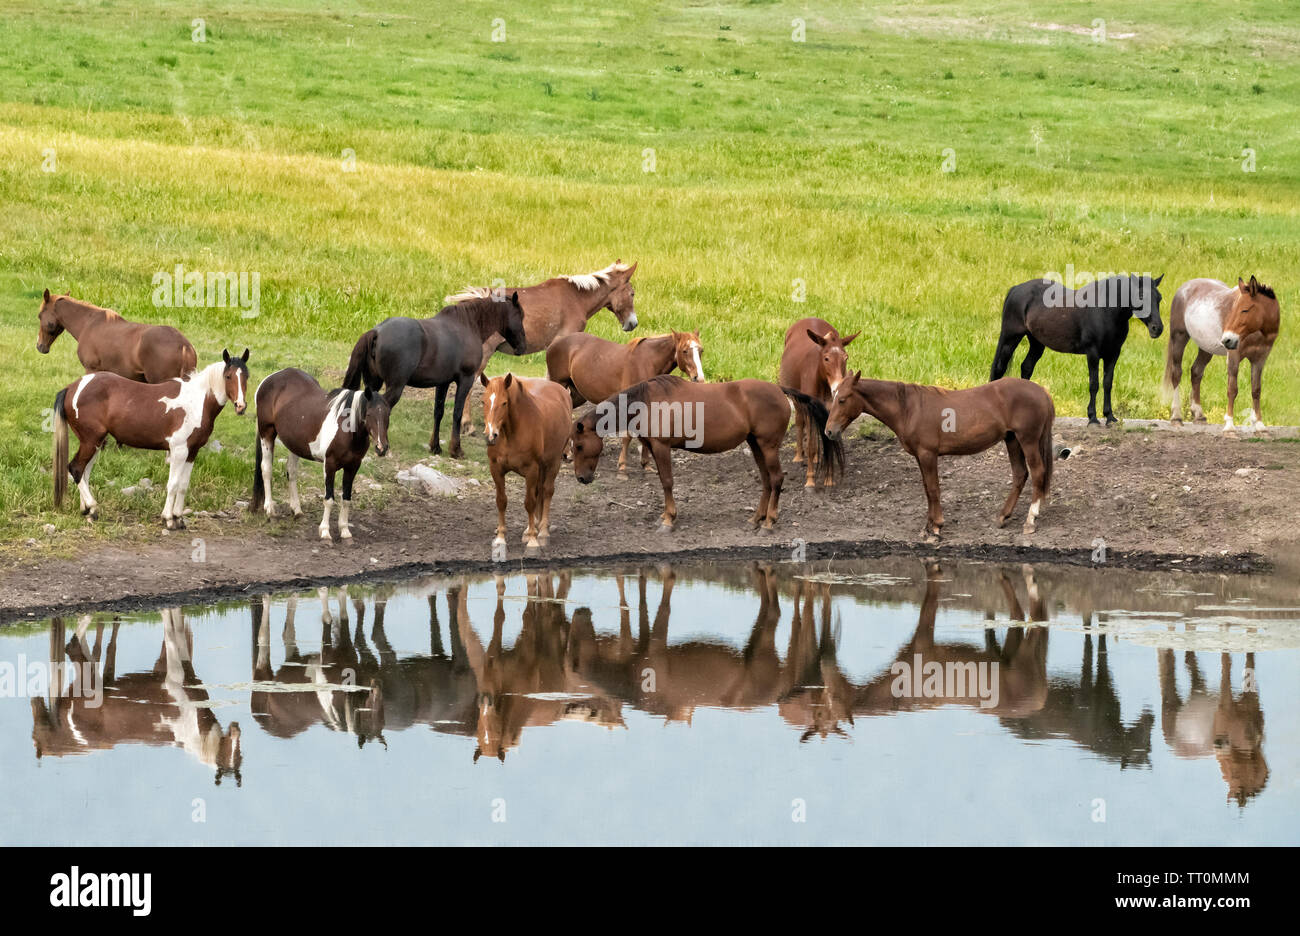 North America; United States; Montana; Ranching; Ranch Animals; Horses and Mules. Stock Photo